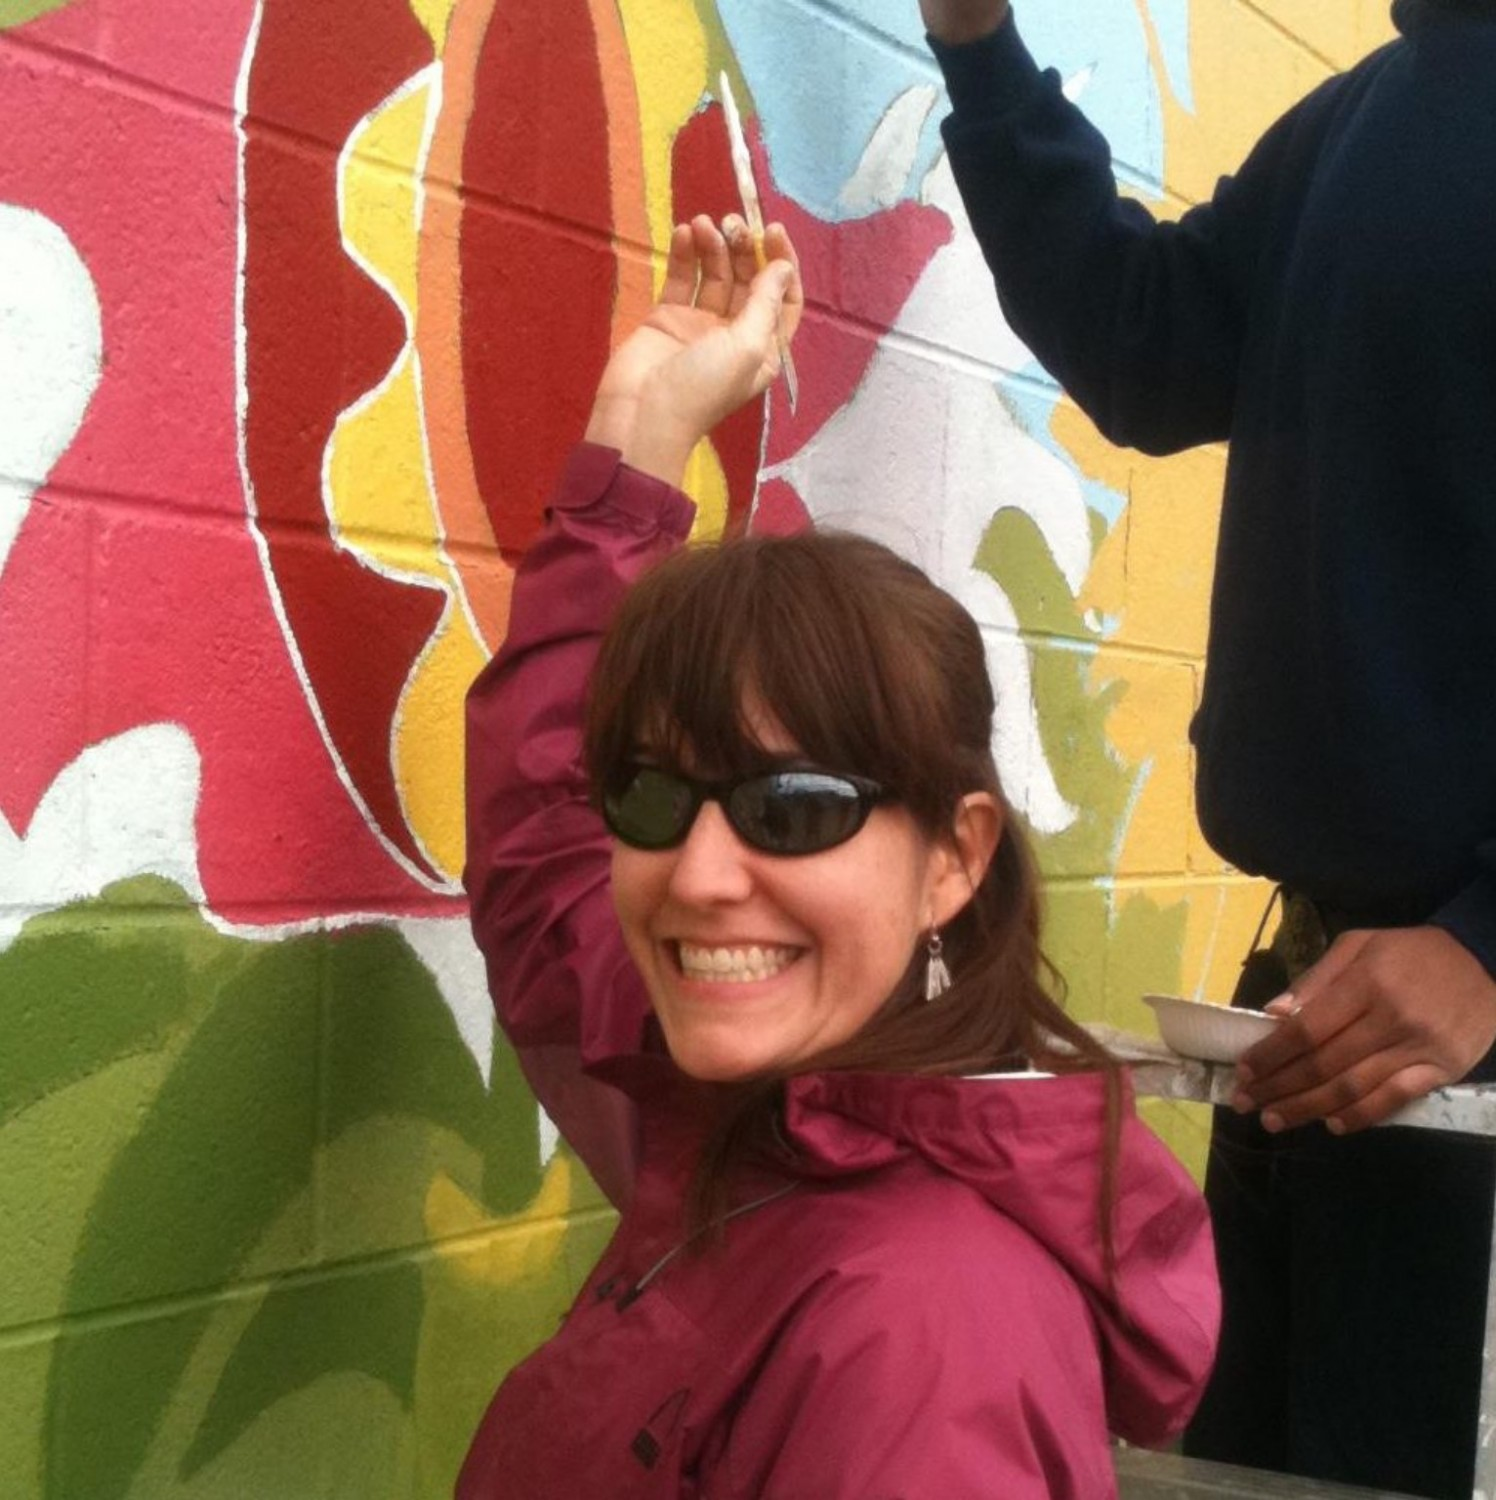 North Bham Mural Project